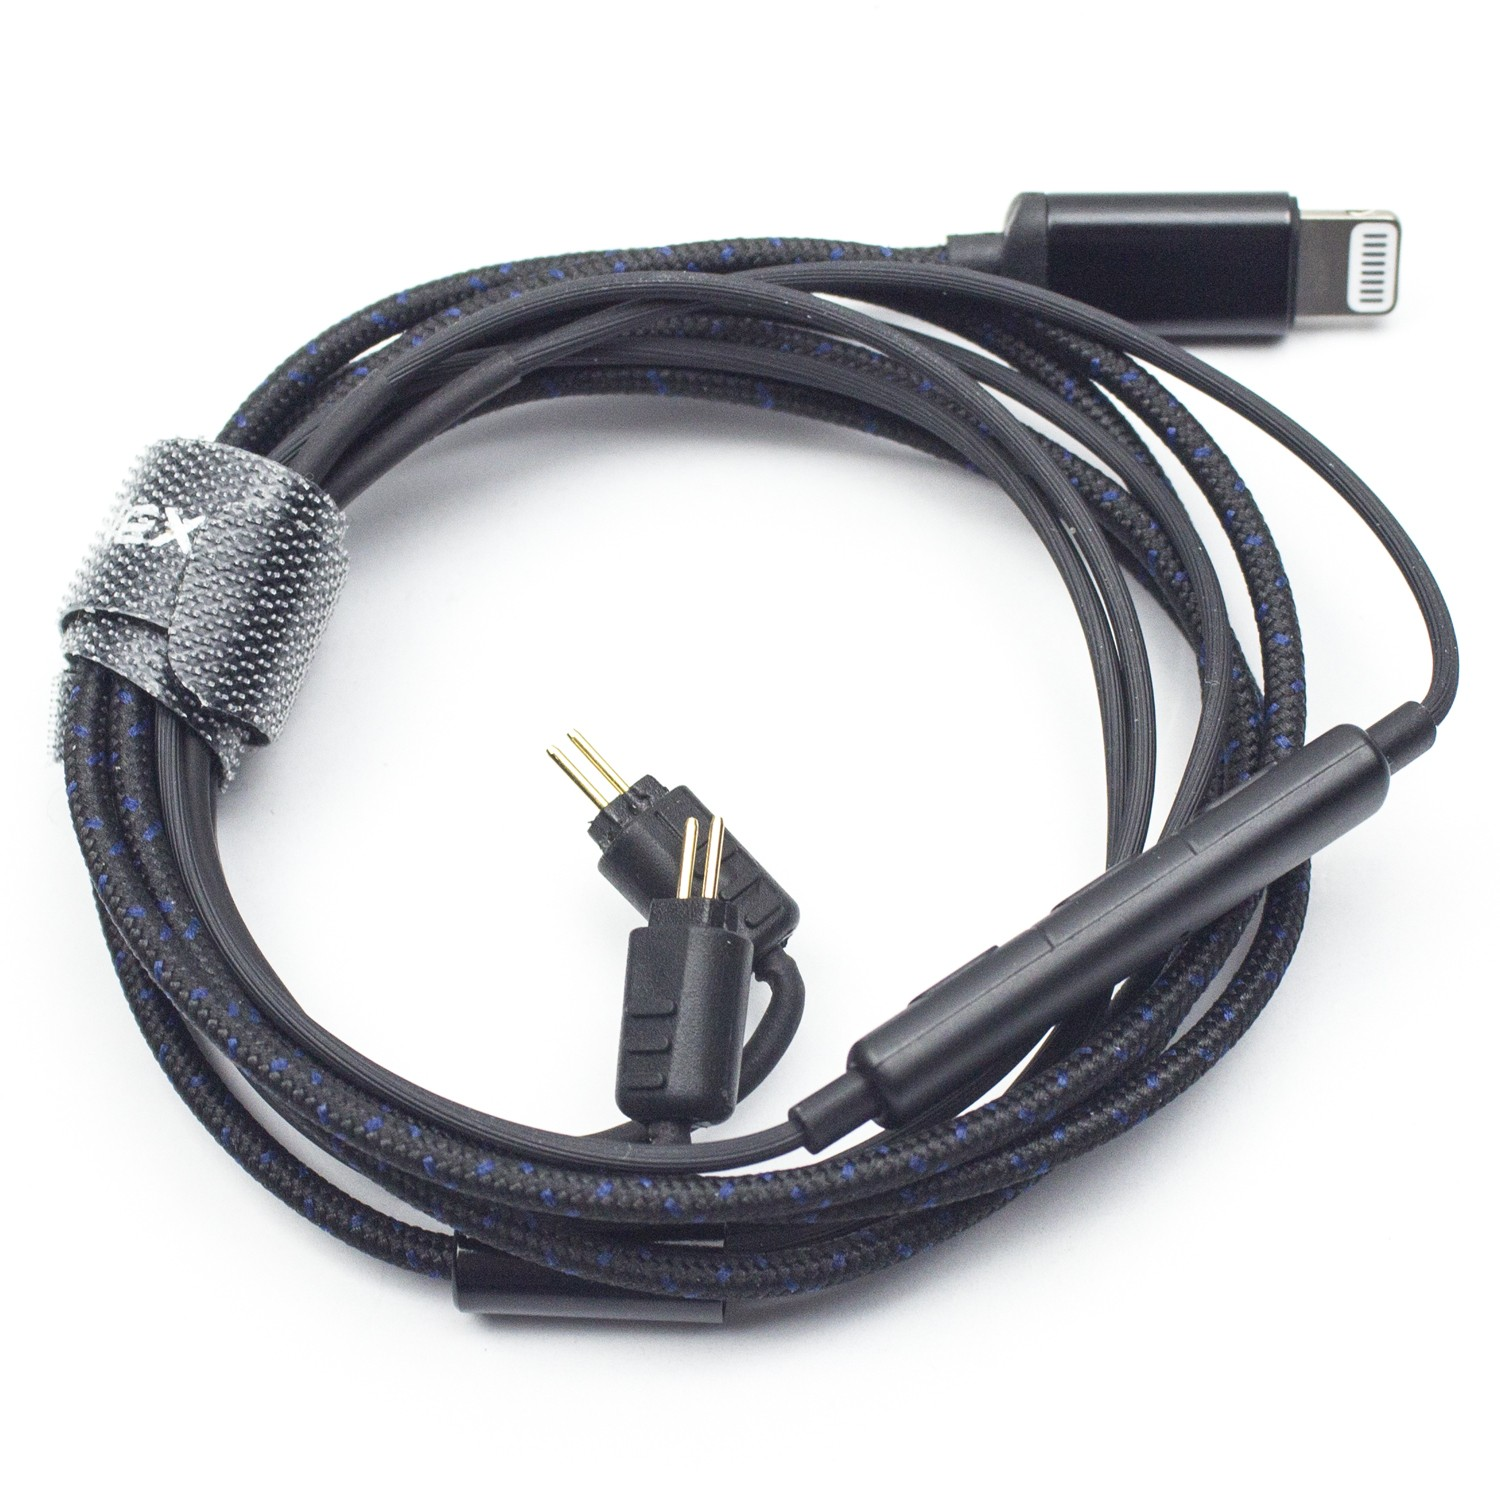 RevoNext bluetooth cable company for earphone-7